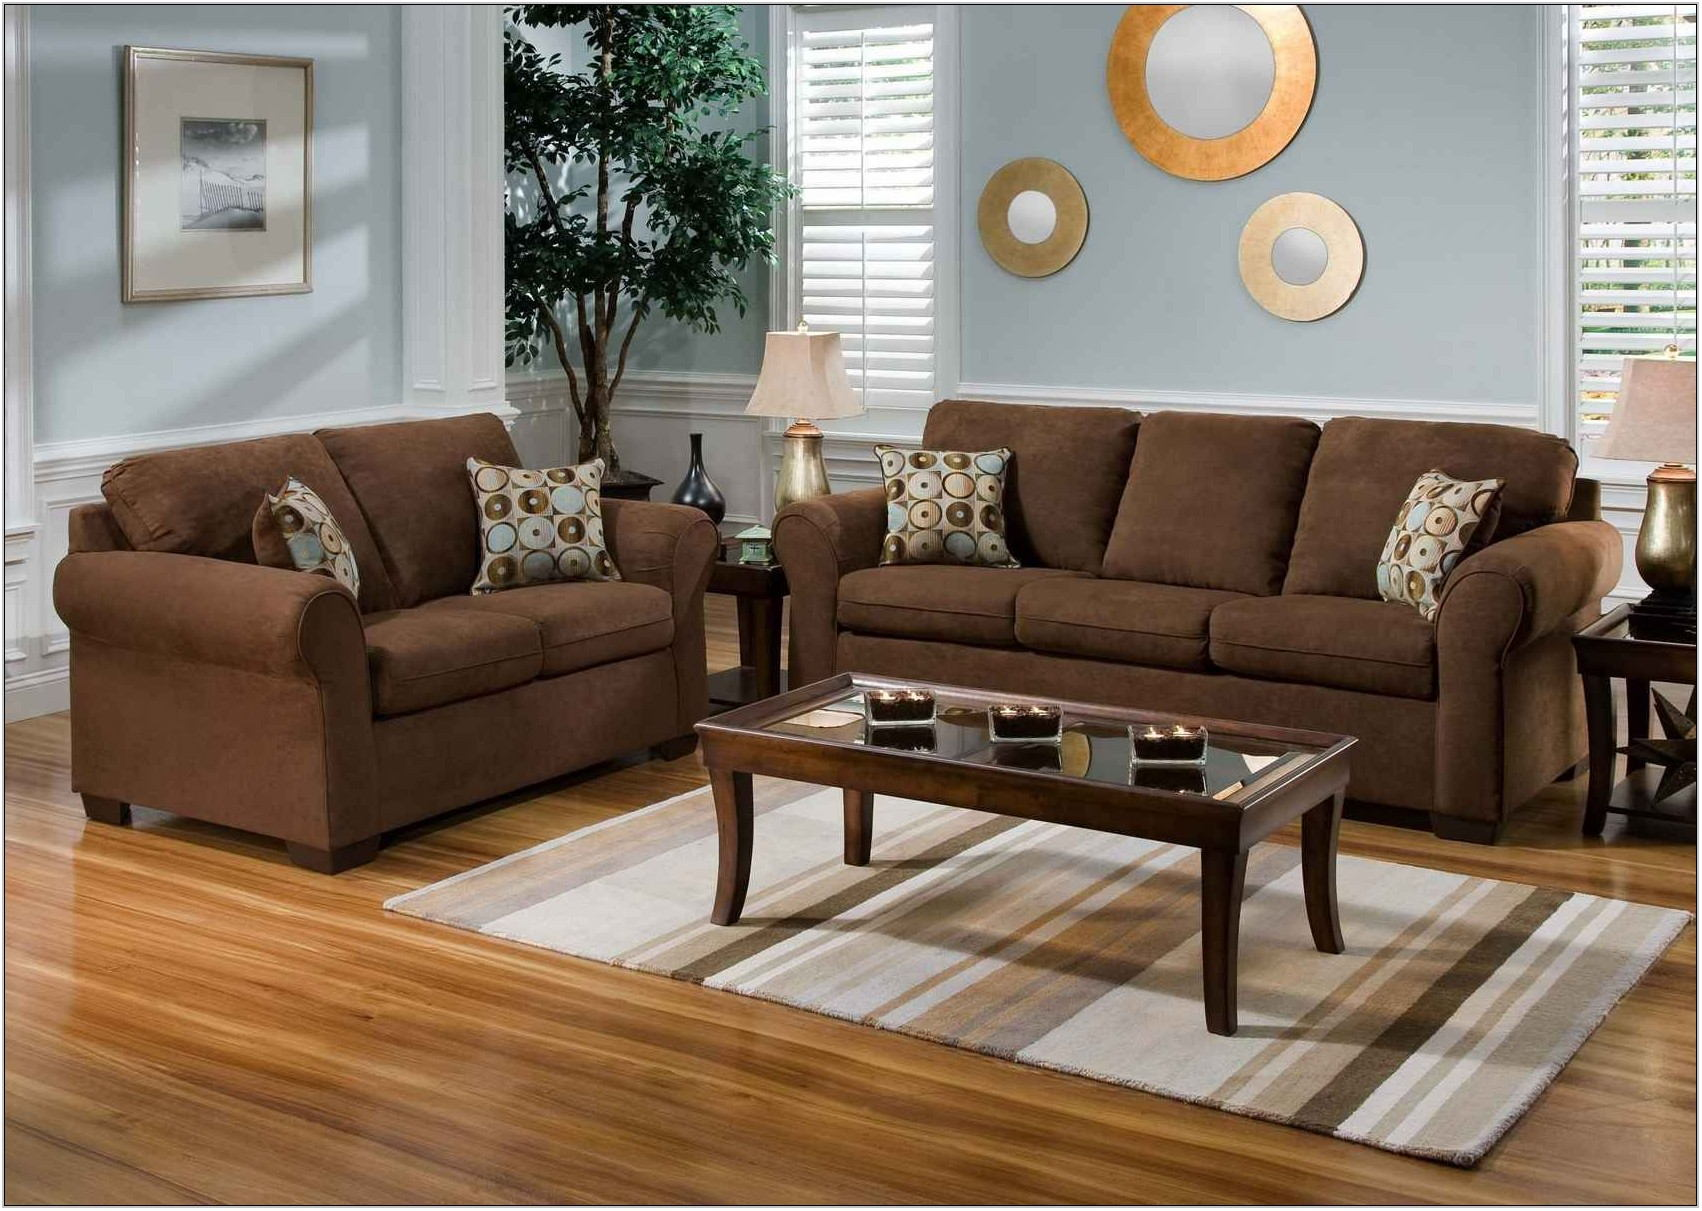 Light Brown Color For Living Room